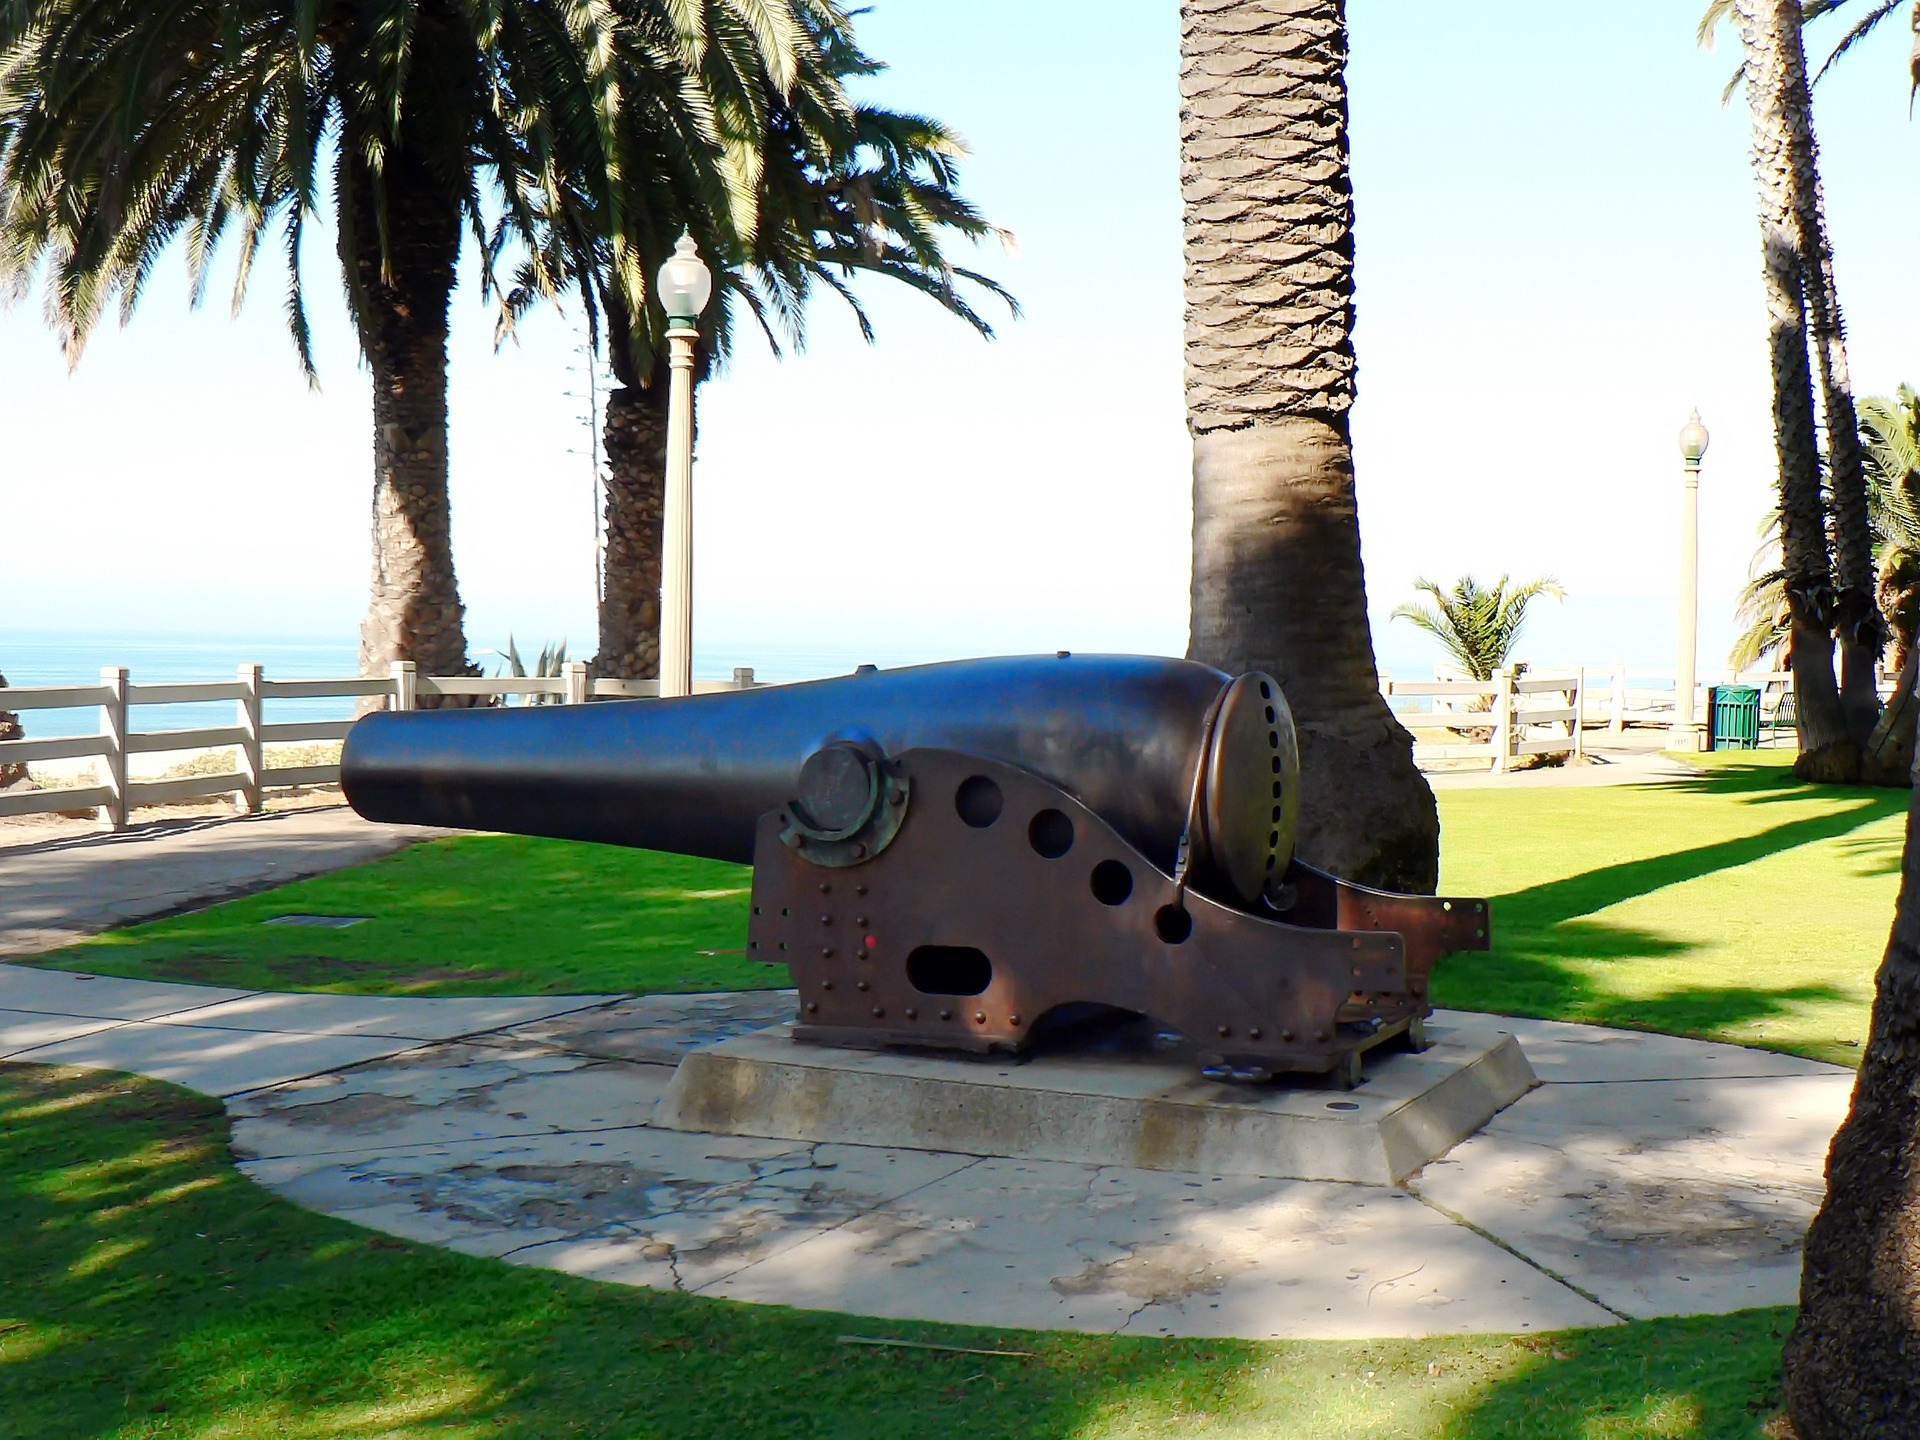 Cannon at Santa Monica Beach, Los Angeles